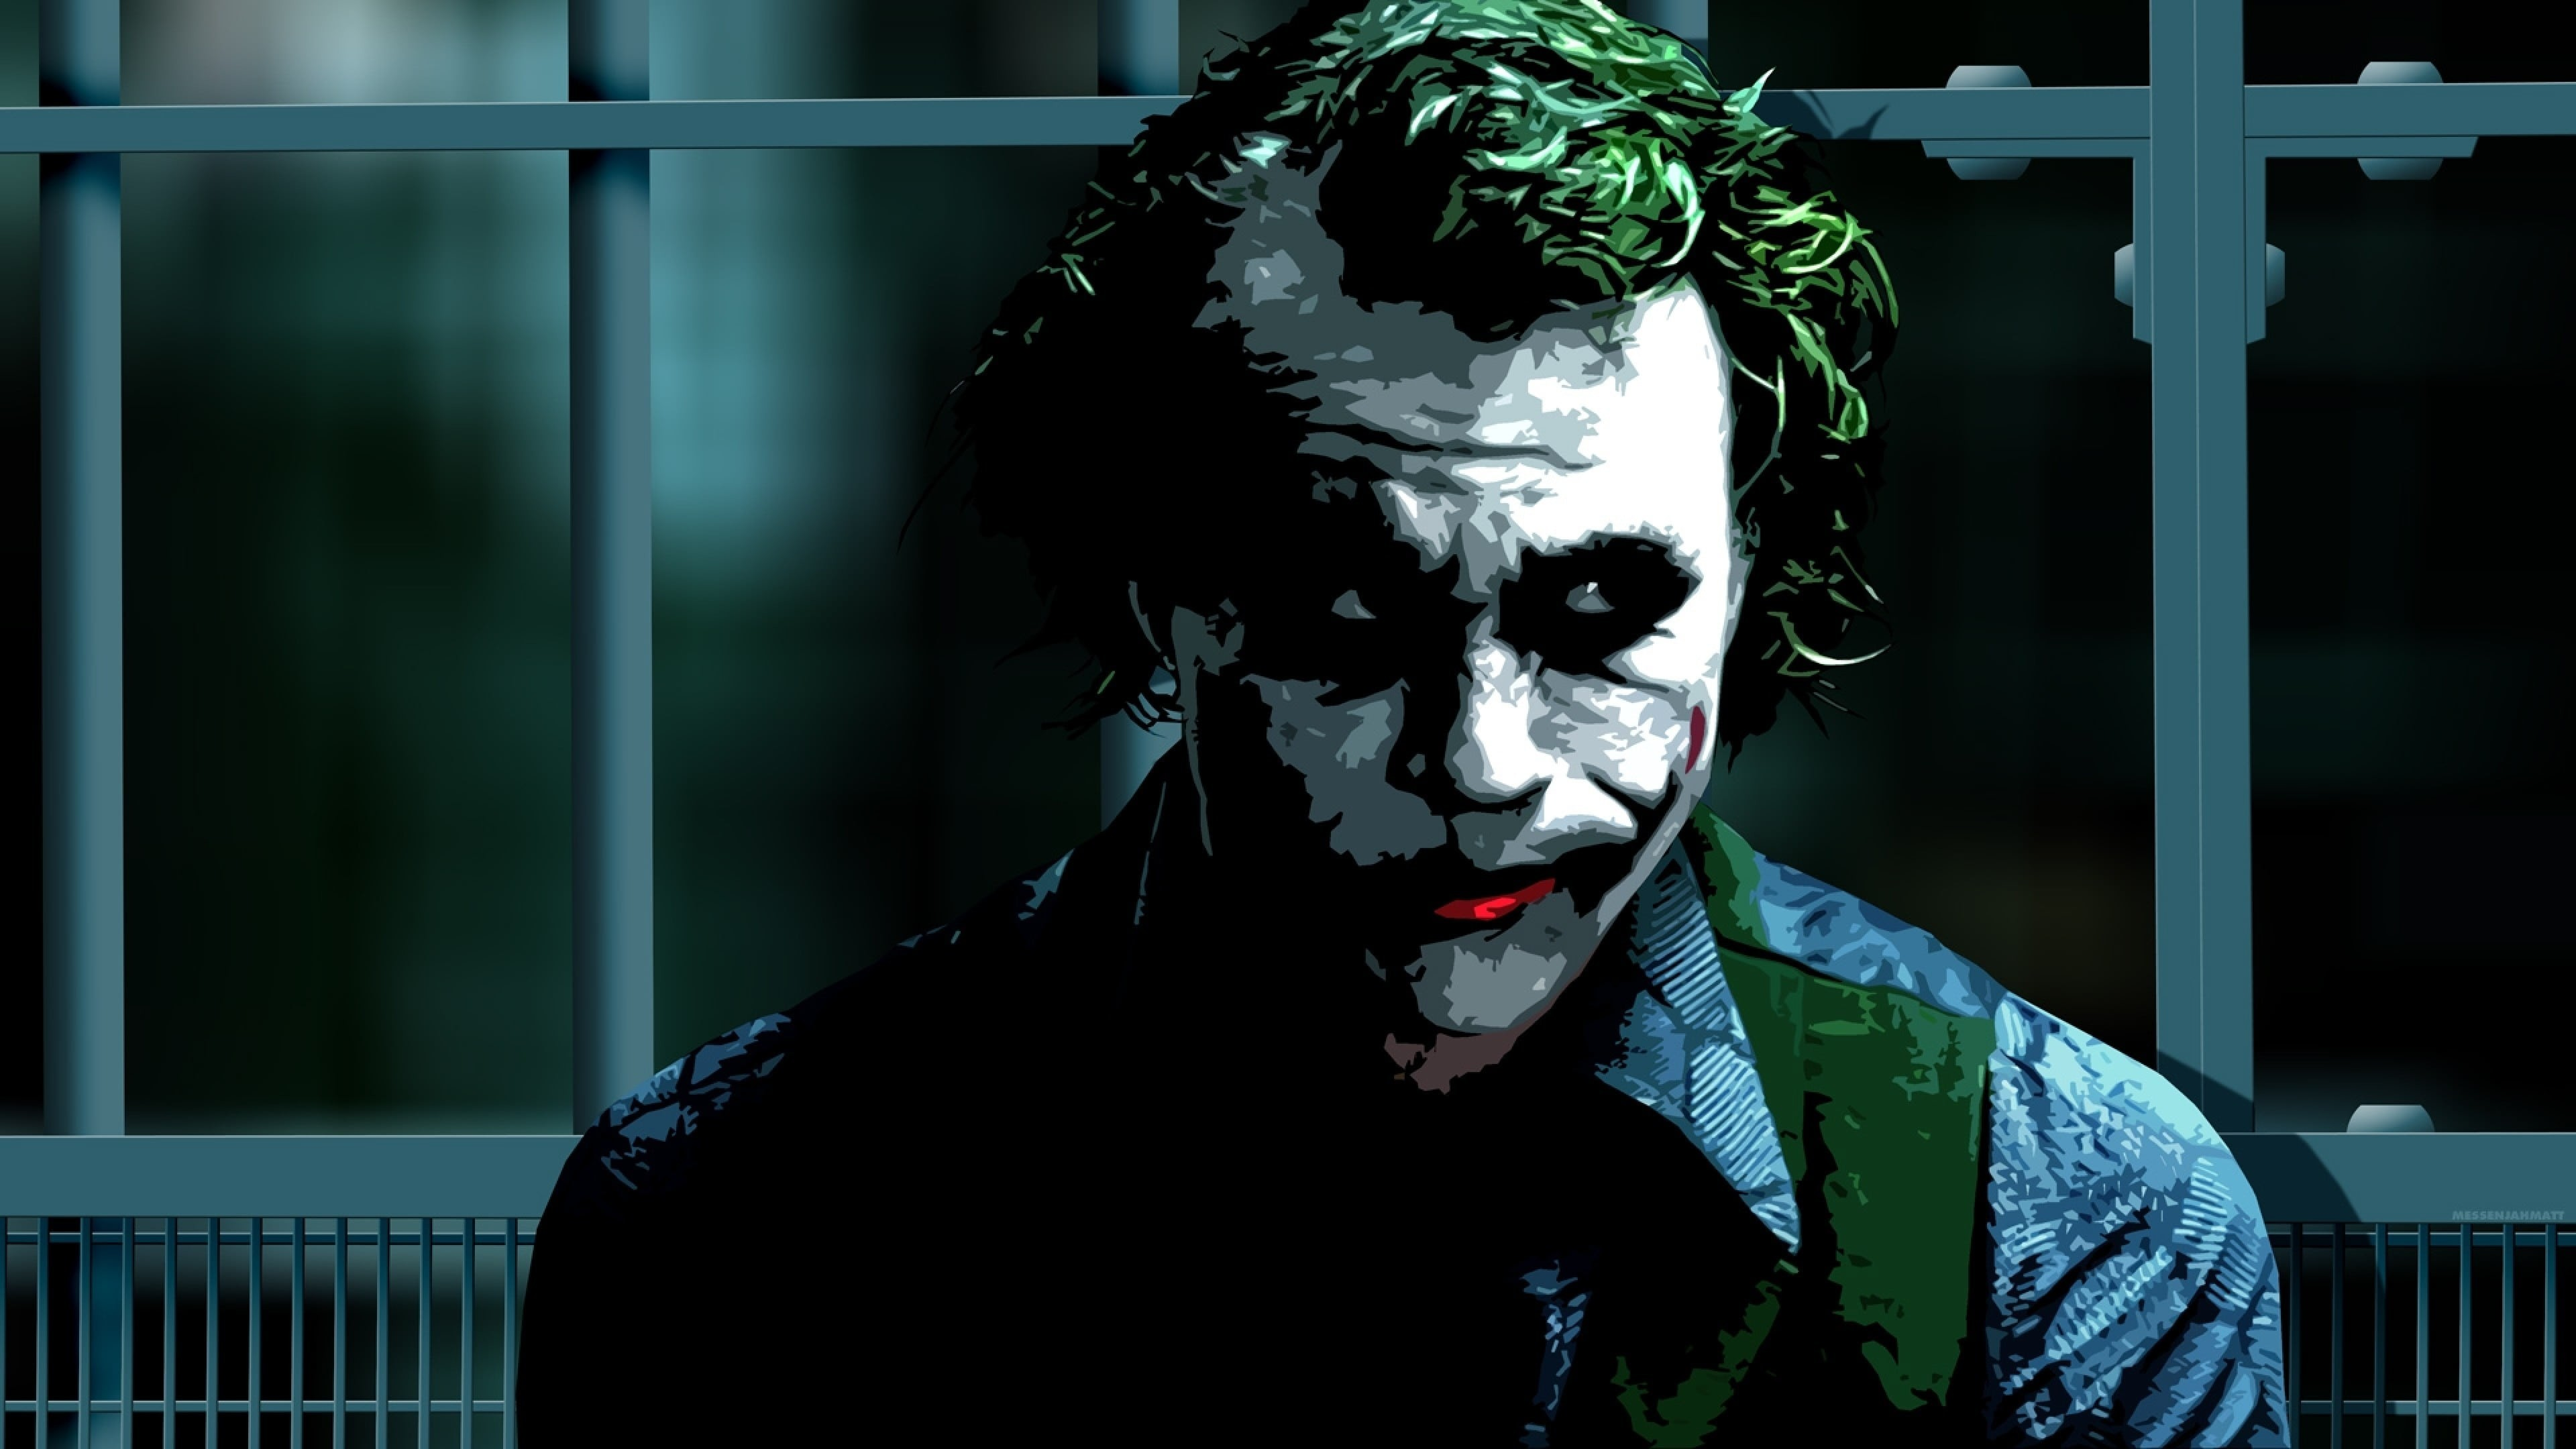 1920x1080 Joker Wallpaper 31 – HD Wallpaper, Wallpaper Pics - The Best ... Heath Ledger .